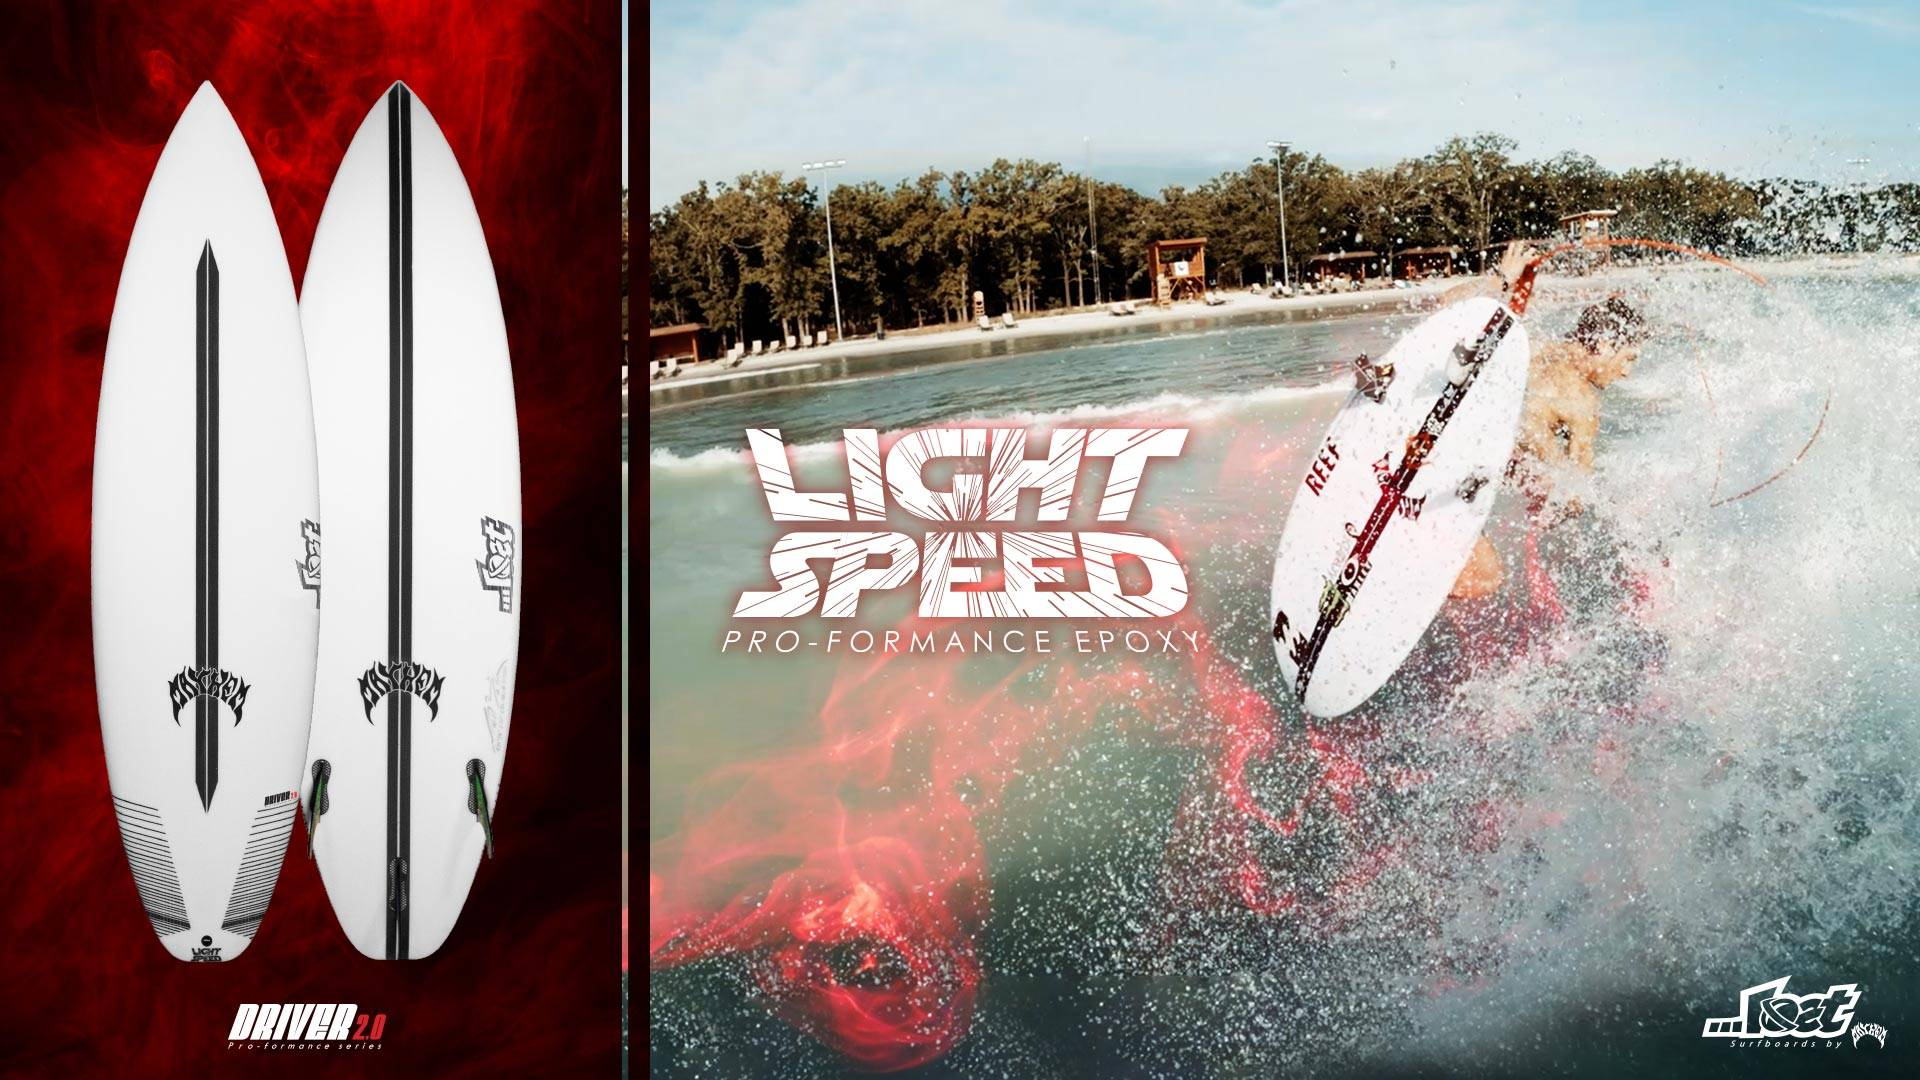 Lightspeed EPS surfboards are for sale now